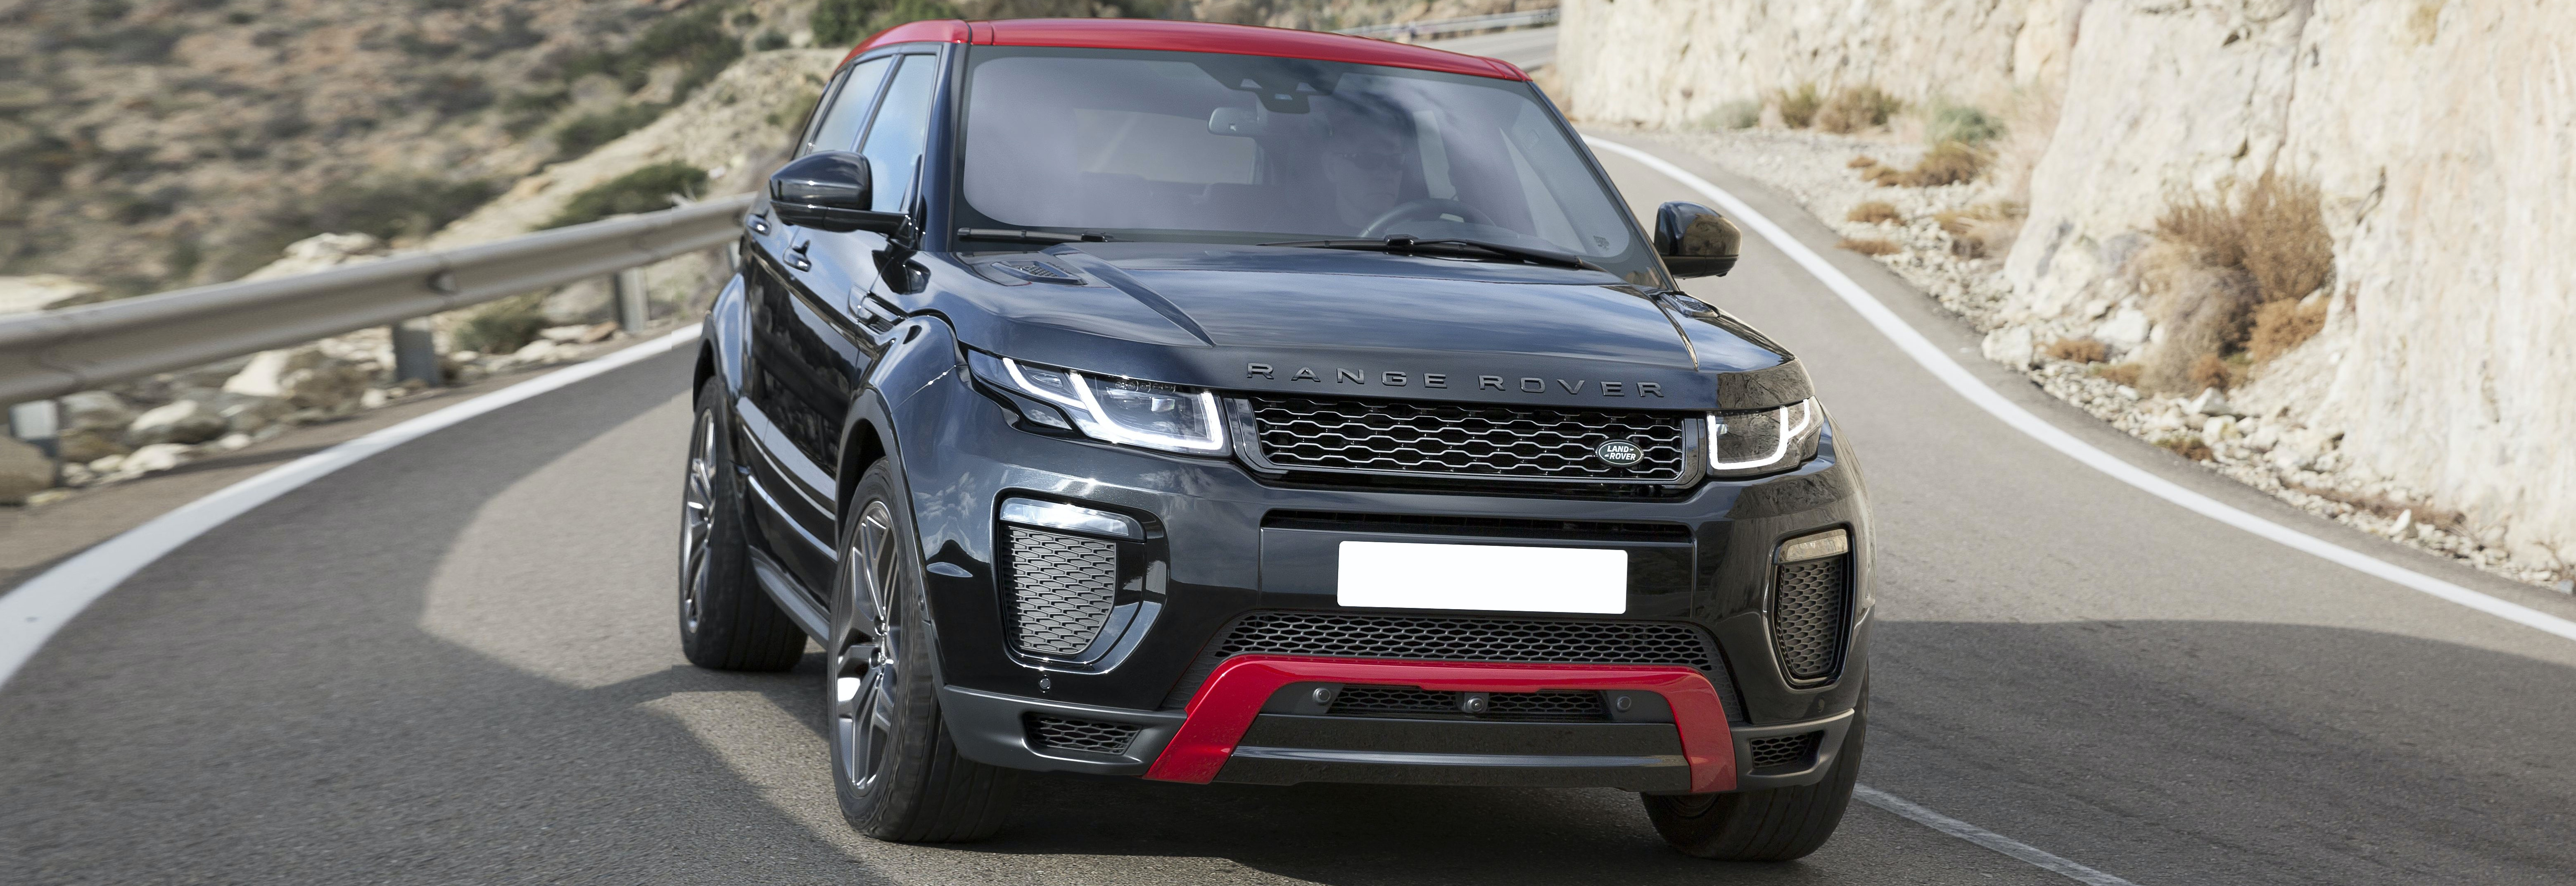 2018 range rover evoque black driving front